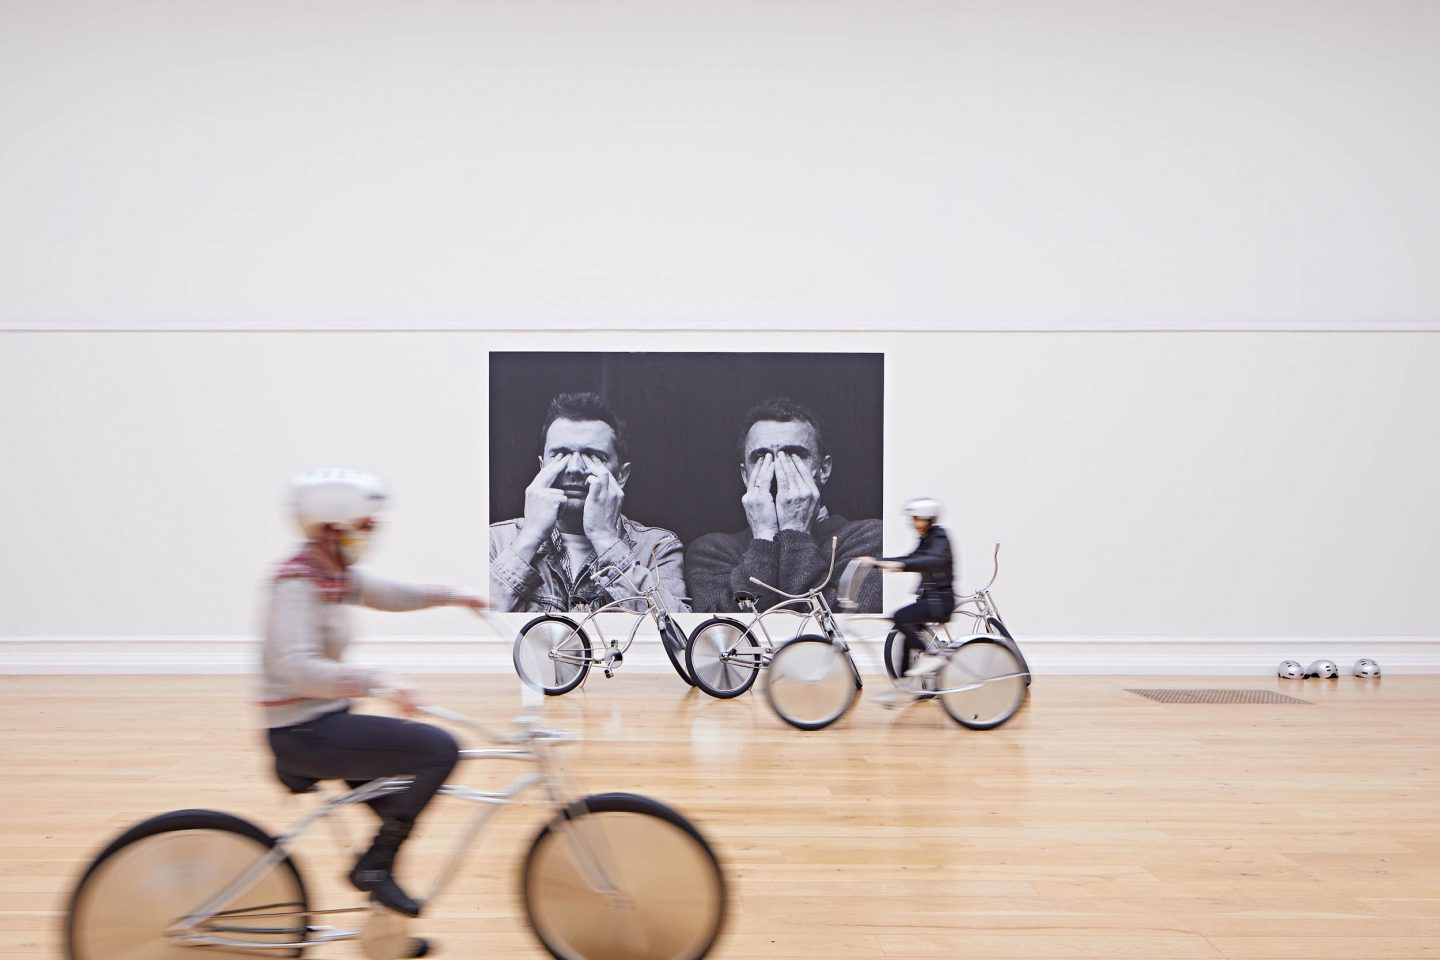 Ann Veronica Janssens at the South London Gallery Installation view of Bikes, 2001 and Phosphènes, 1997–2018 (left to right)by Ann Veronica Janssens Photo: Andy Stagg